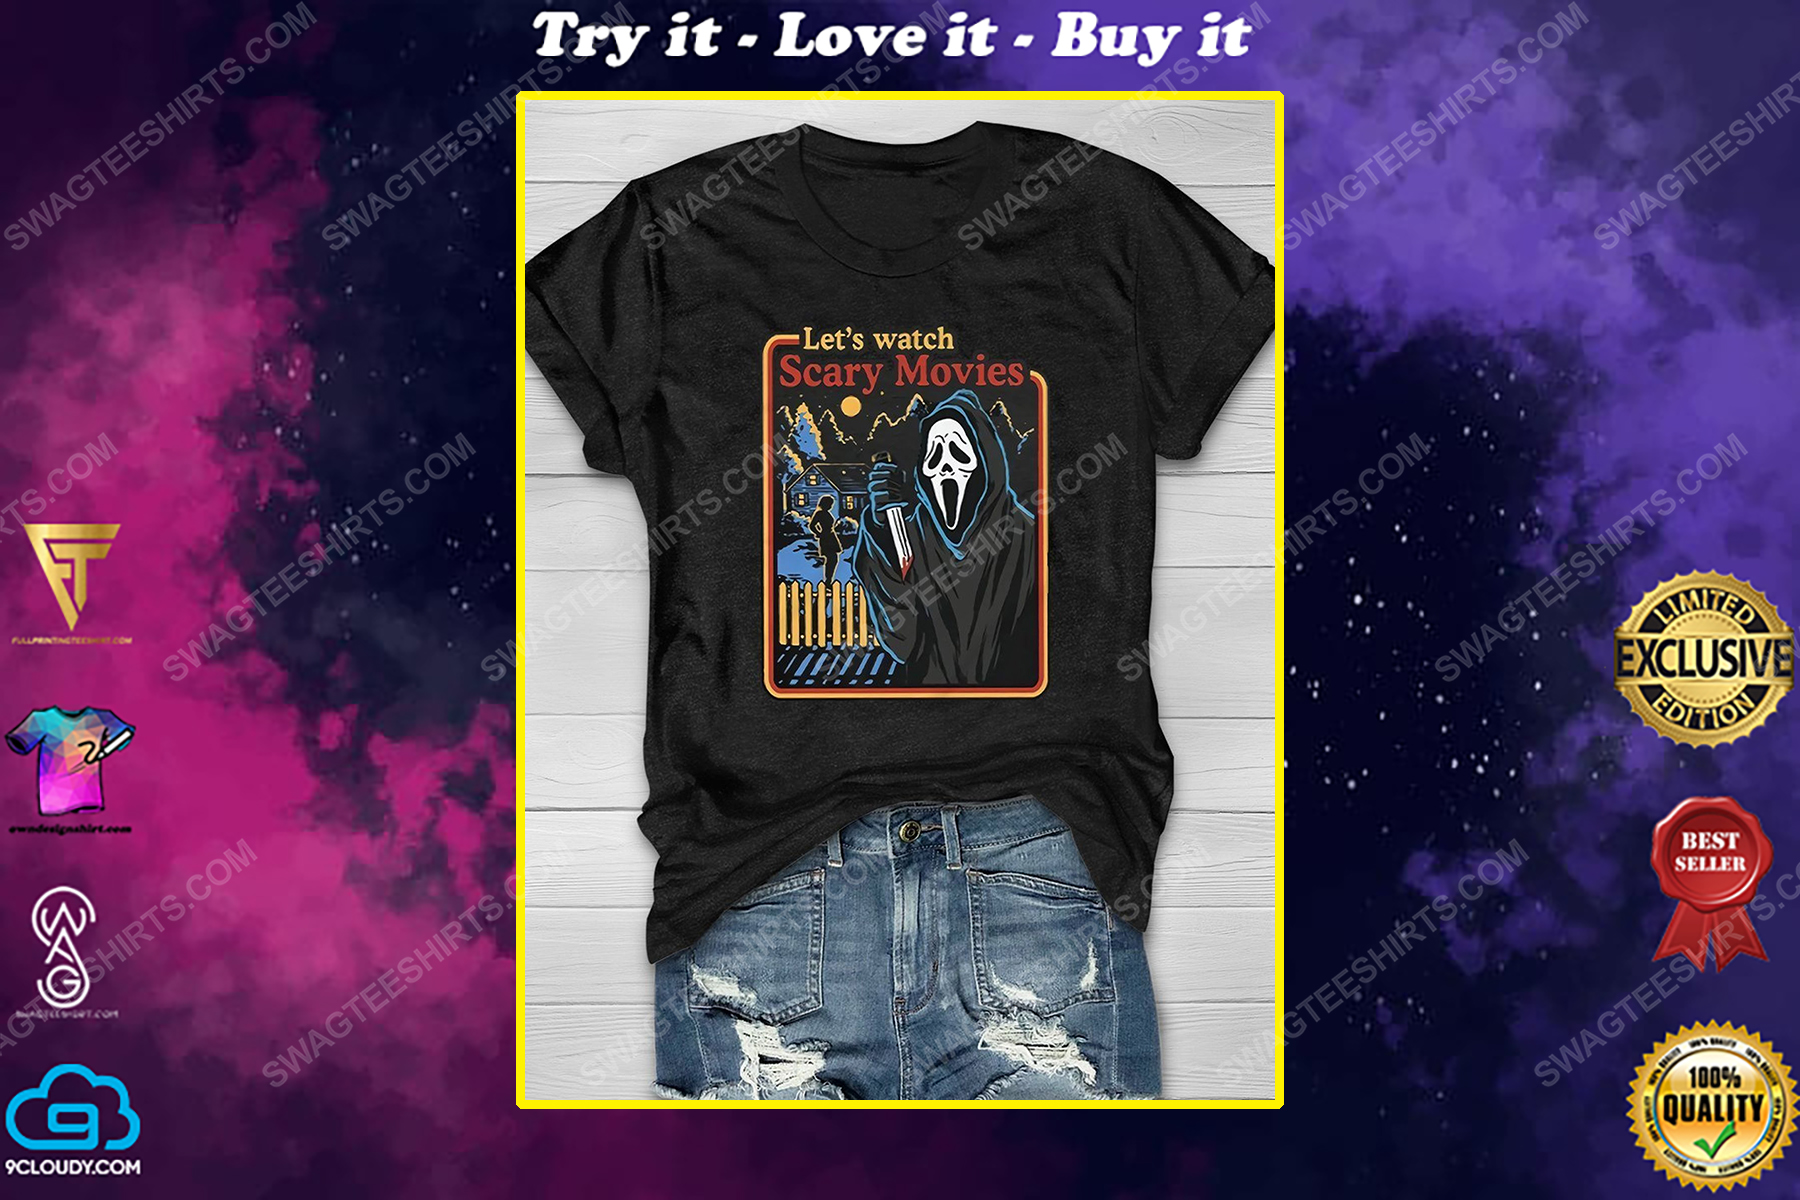 Halloween screaming movie let's watch scary movies shirt